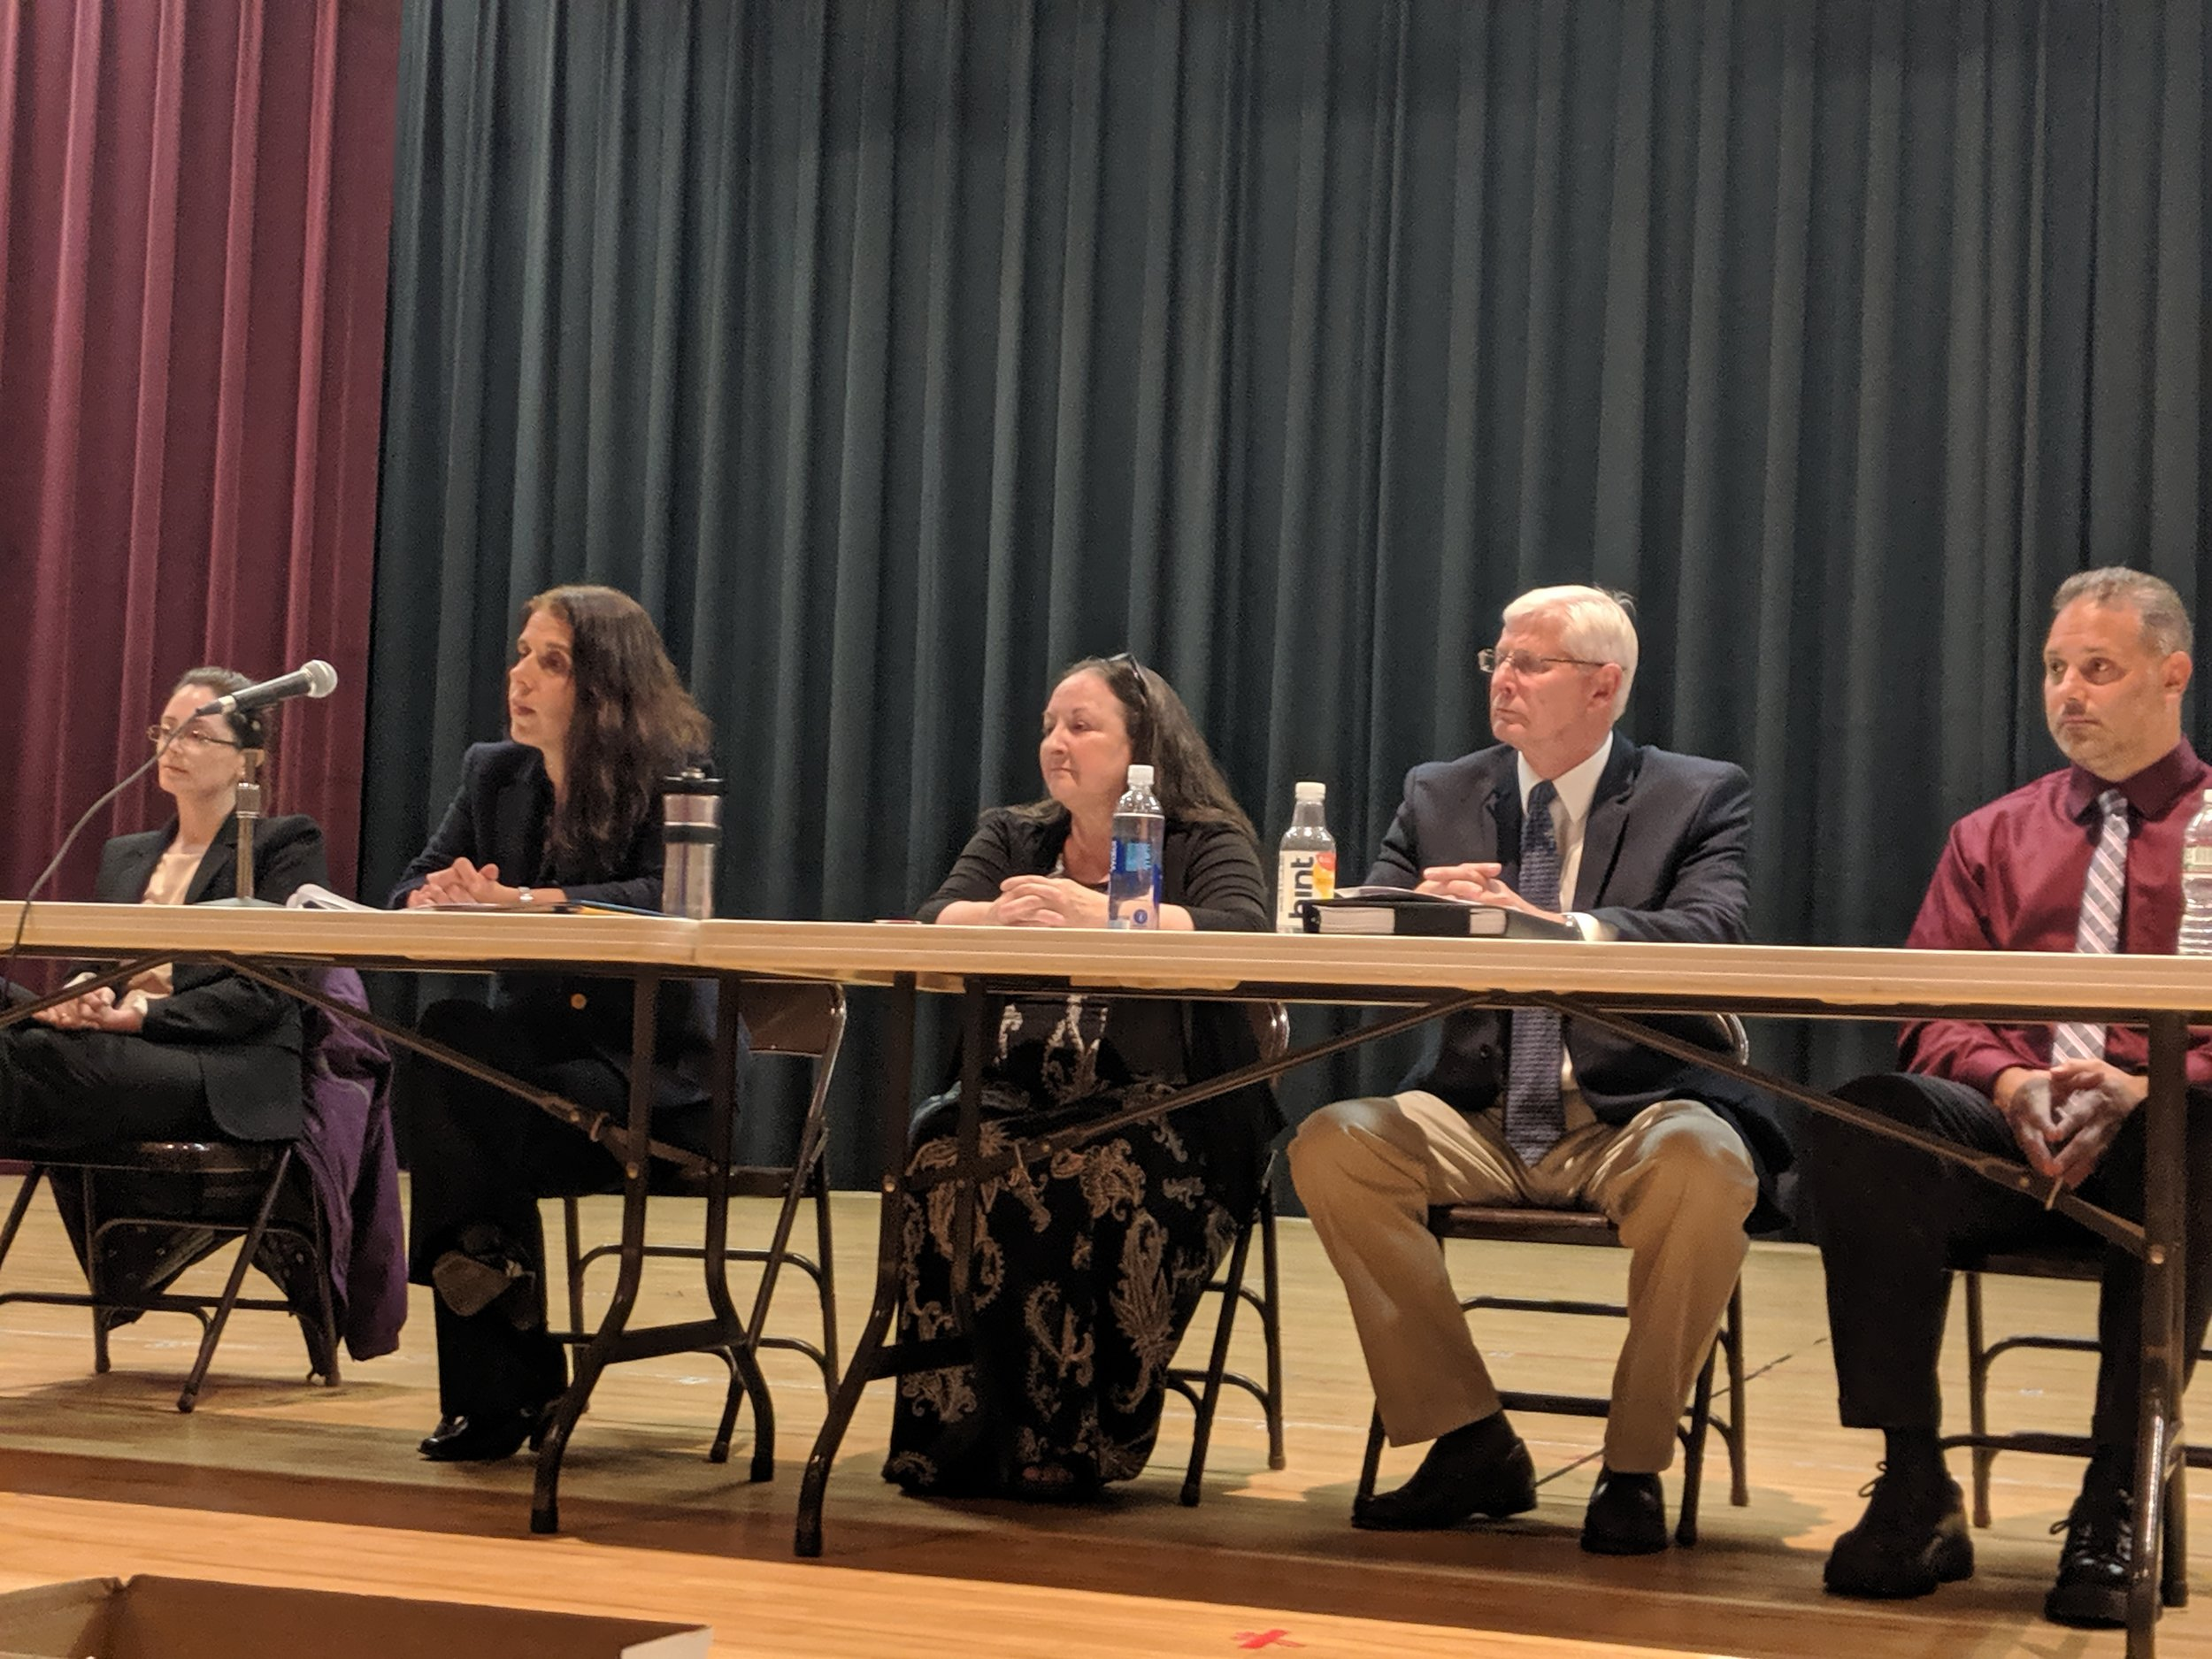 A panel from the Rhode Island Office of Air Resources heard comments from opponents of the proposed Clear River Energy Center. (Tim Faulkner/ecoRI News)